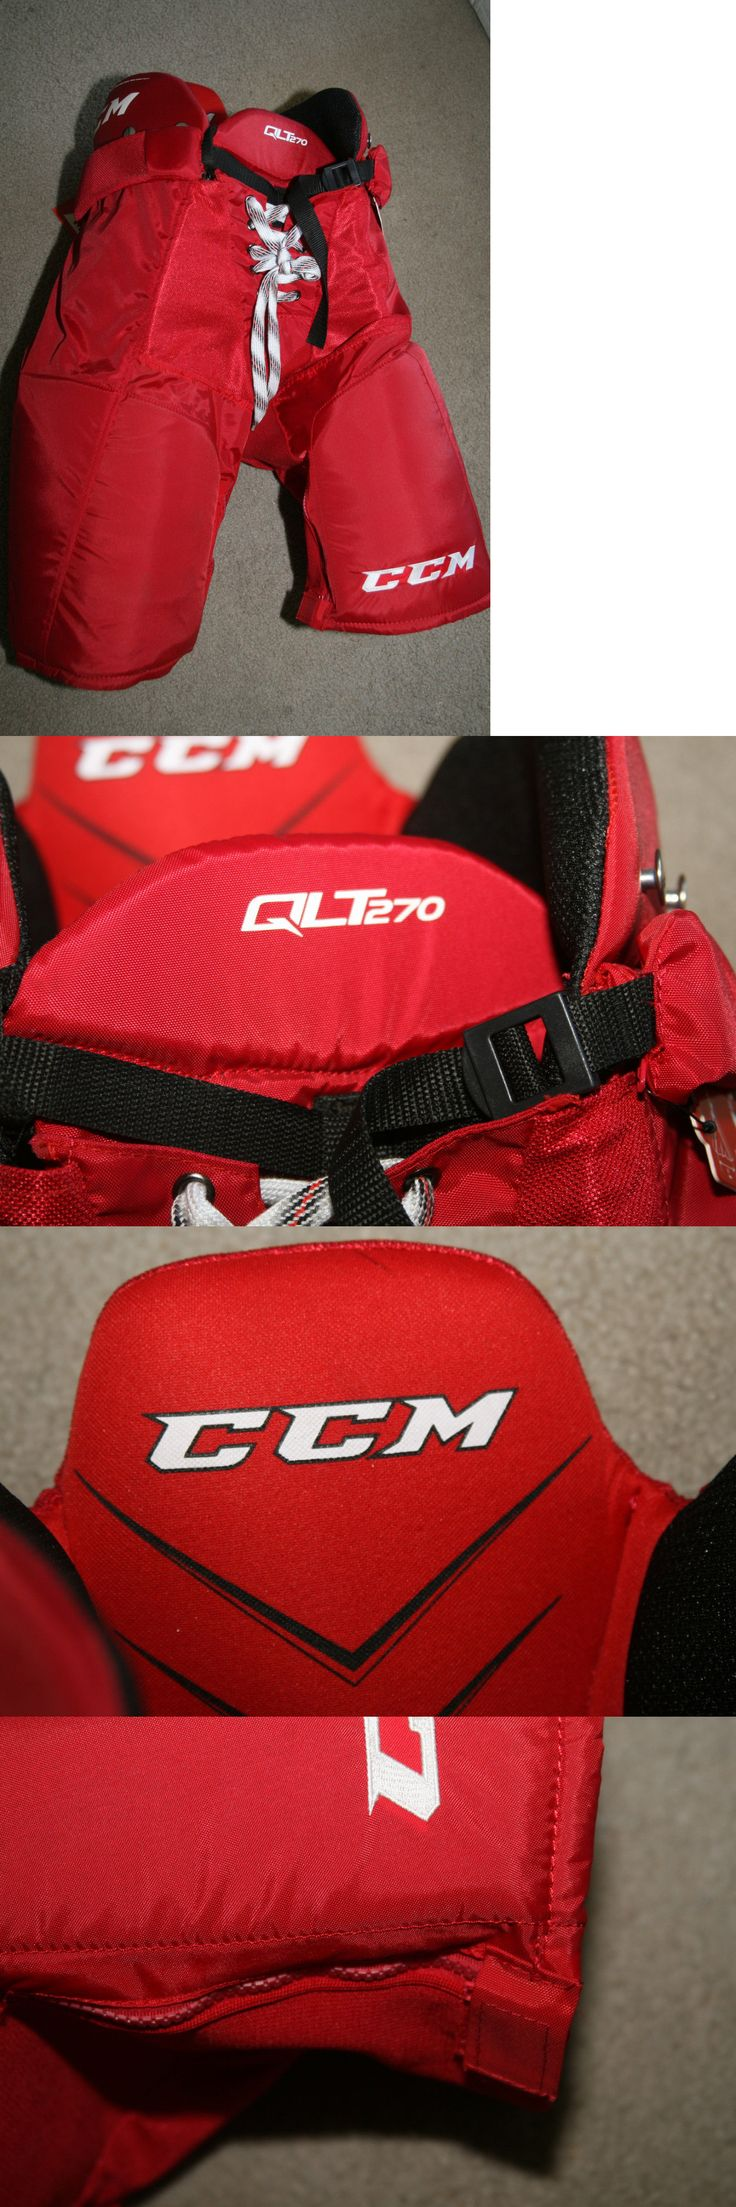 Other Hockey Clothing and Gear 165934: Ccm Quicklite 270 Red Hockey Pants - Sr Sz Medium Nwt BUY IT NOW ONLY: $51.99